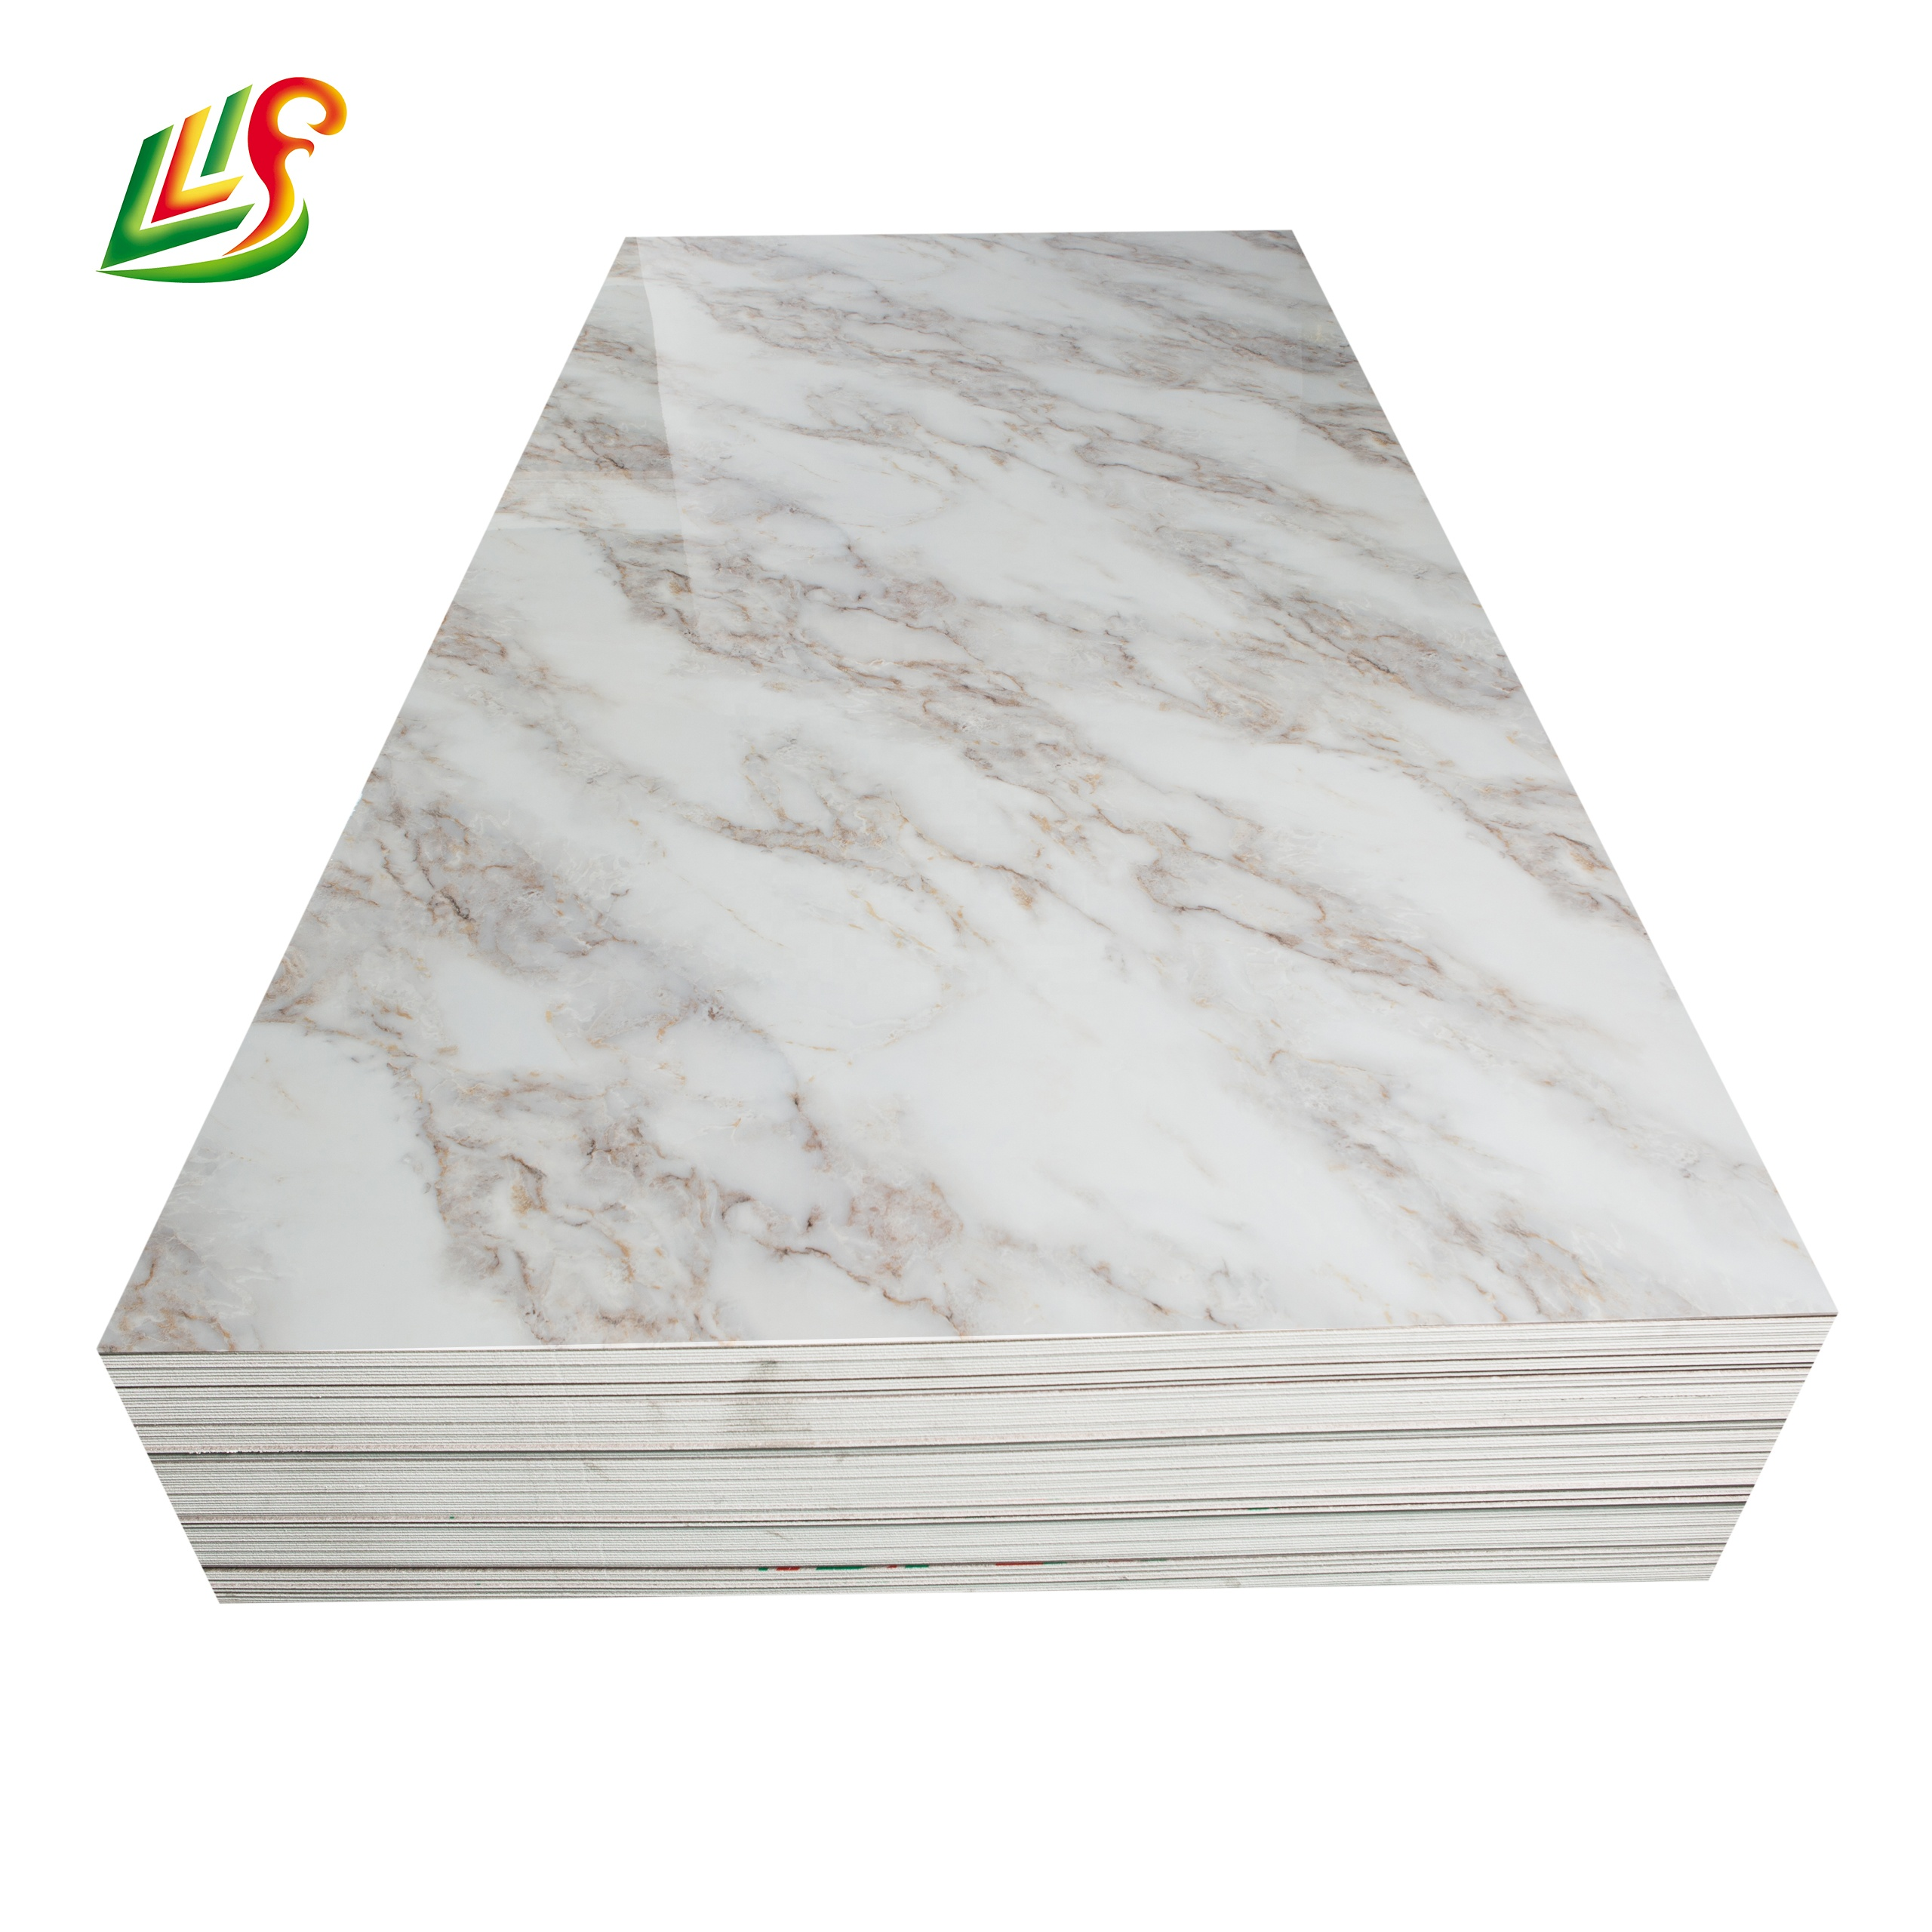 35% <strong>Pvc</strong>, 62% Caco3, 3% Additive. Composition and 2.0g/cm^3. Density chinese marble tiles for Saudi Arabia